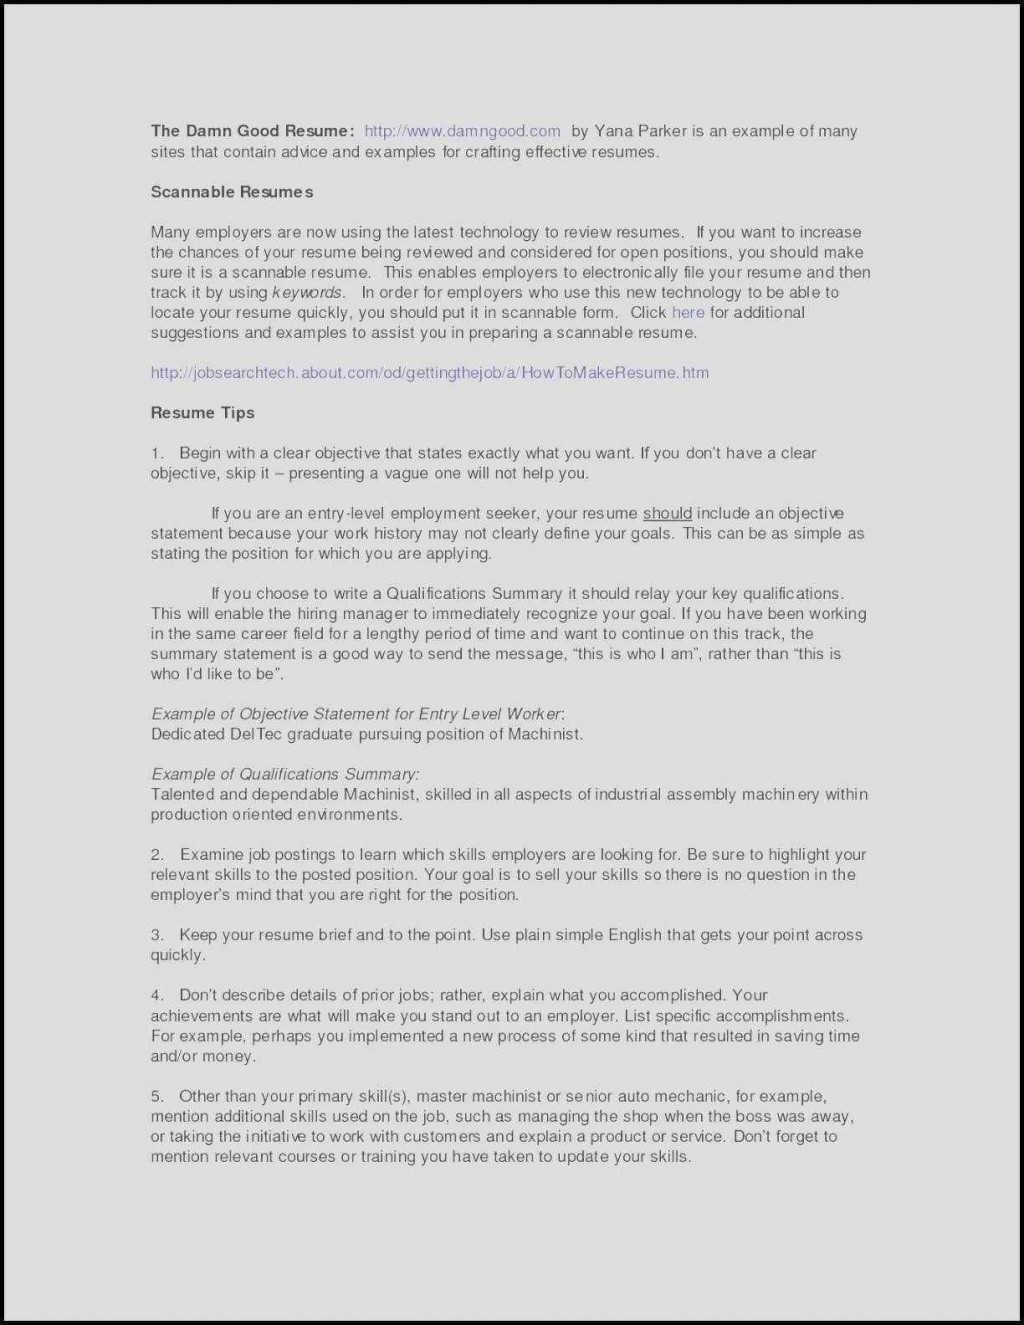 018 Resume Sample Qualification Summary Valid Ideas Great Of Research Paper How To Write Phenomenal A Good Conclusion And Recommendation Synopsis For Large